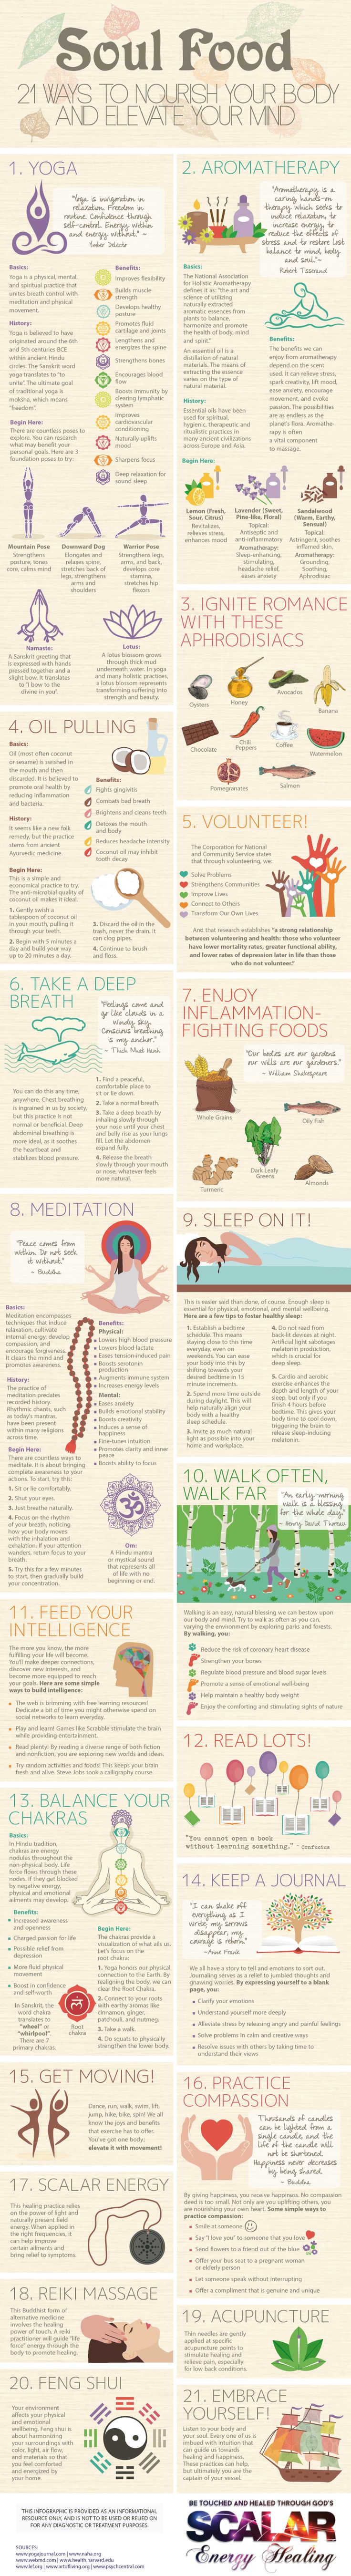 21 Ways to Nourish Your Body and Elevate Your Mind #infographic #health #Yoga / 21 modi per nutrire il tuo corpo ed elevare la tua mente #infografico #salute #Yoga